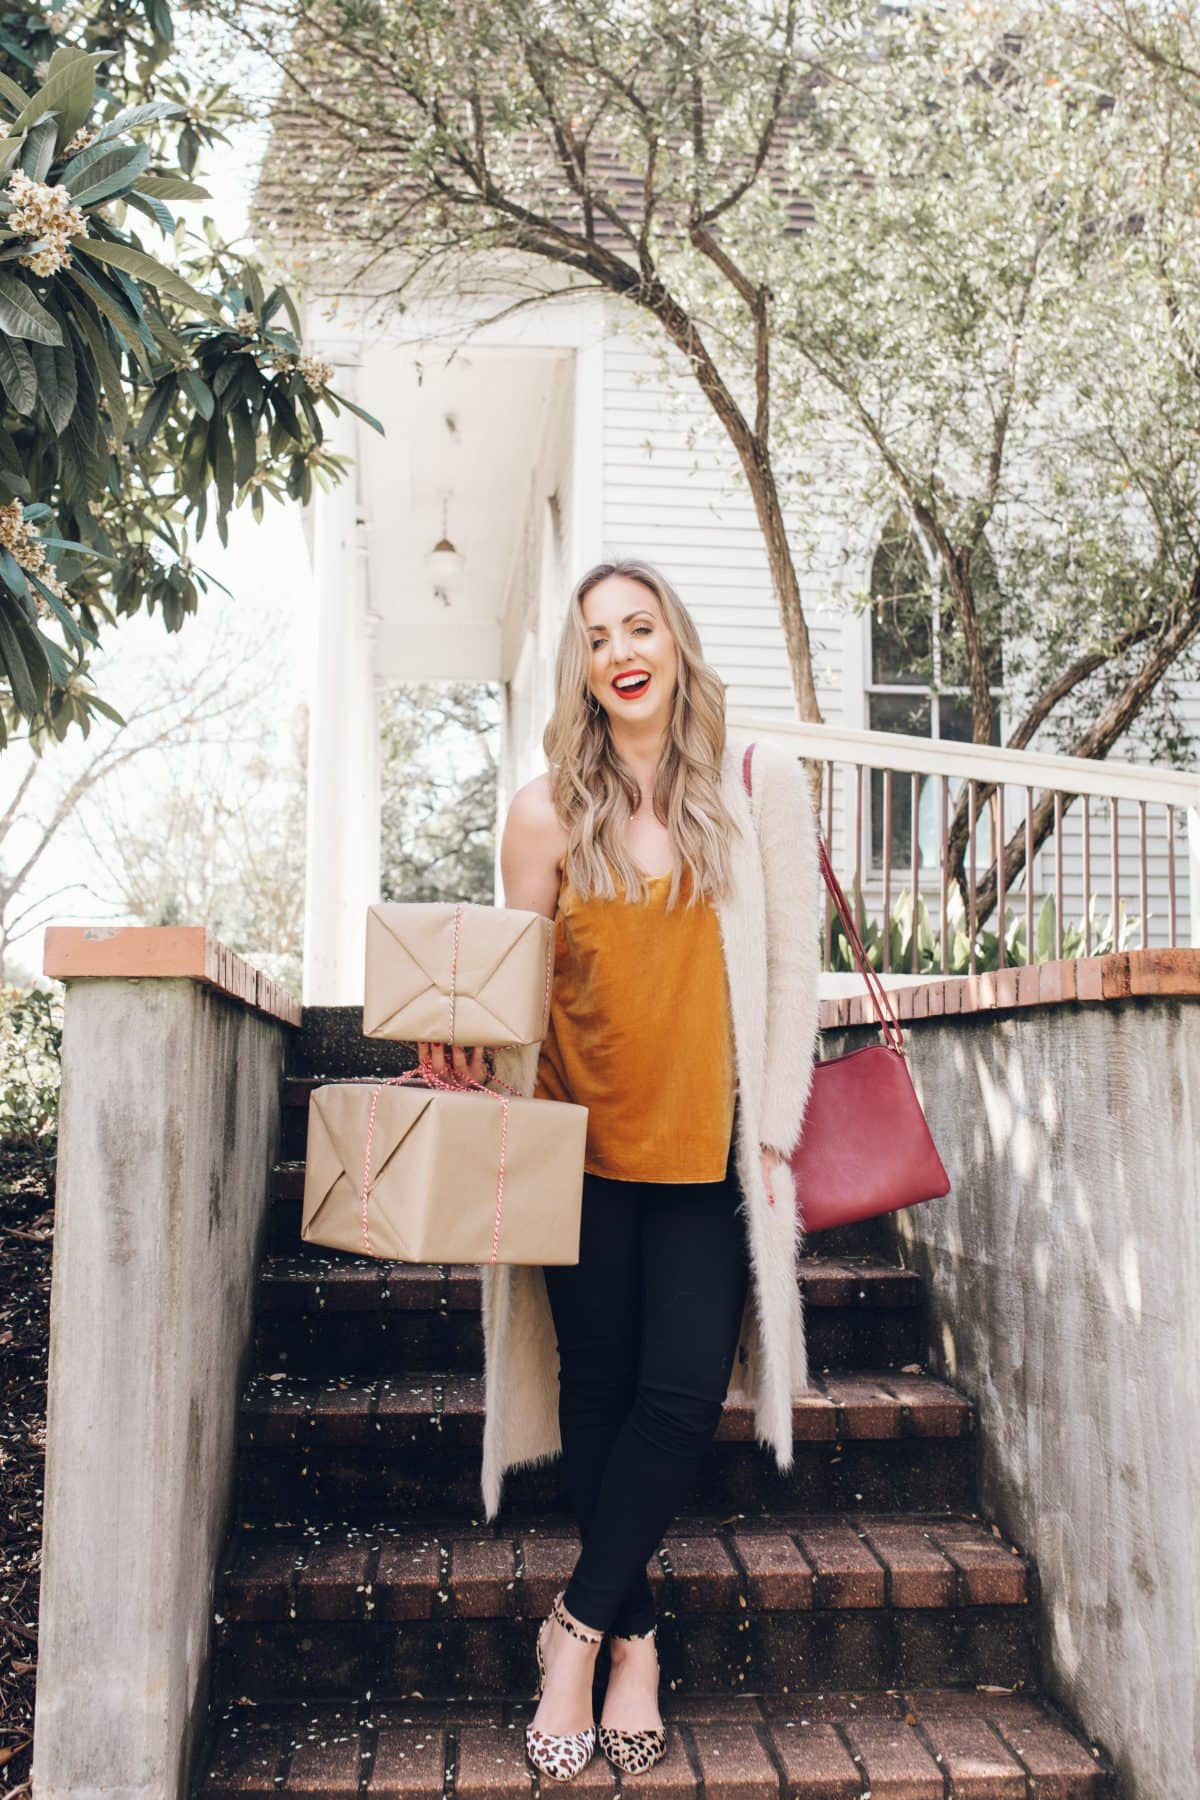 Houston lifestyle blogger Meg O. on the Go shares two Christmas-appropriate outfits for this holiday season from Evereve